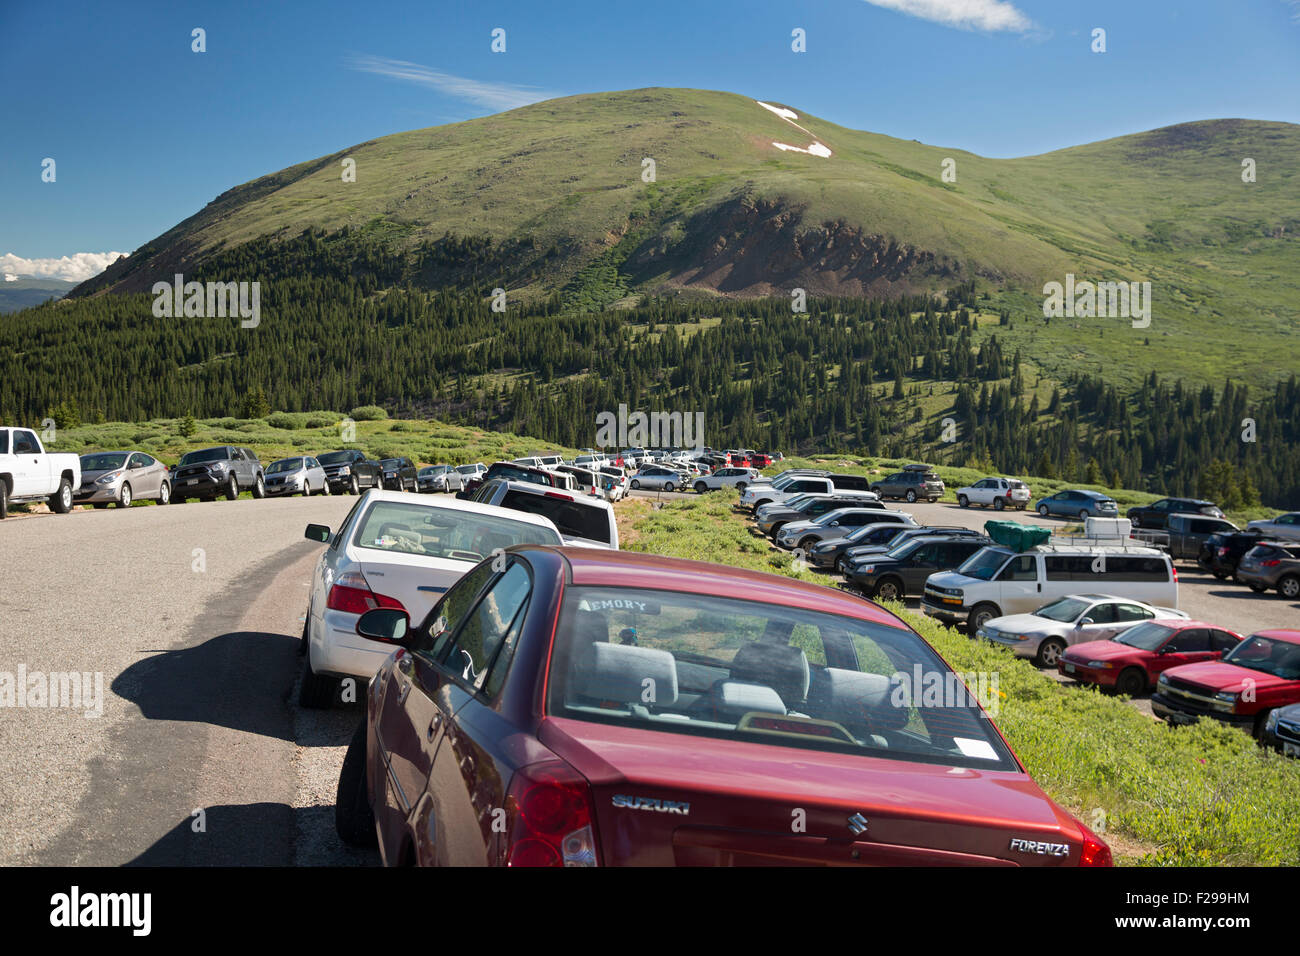 Georgetown, Colorado - Cars overflow the parking lots and line the road at Guanella Pass near the Mt. Bierstadt - Stock Image